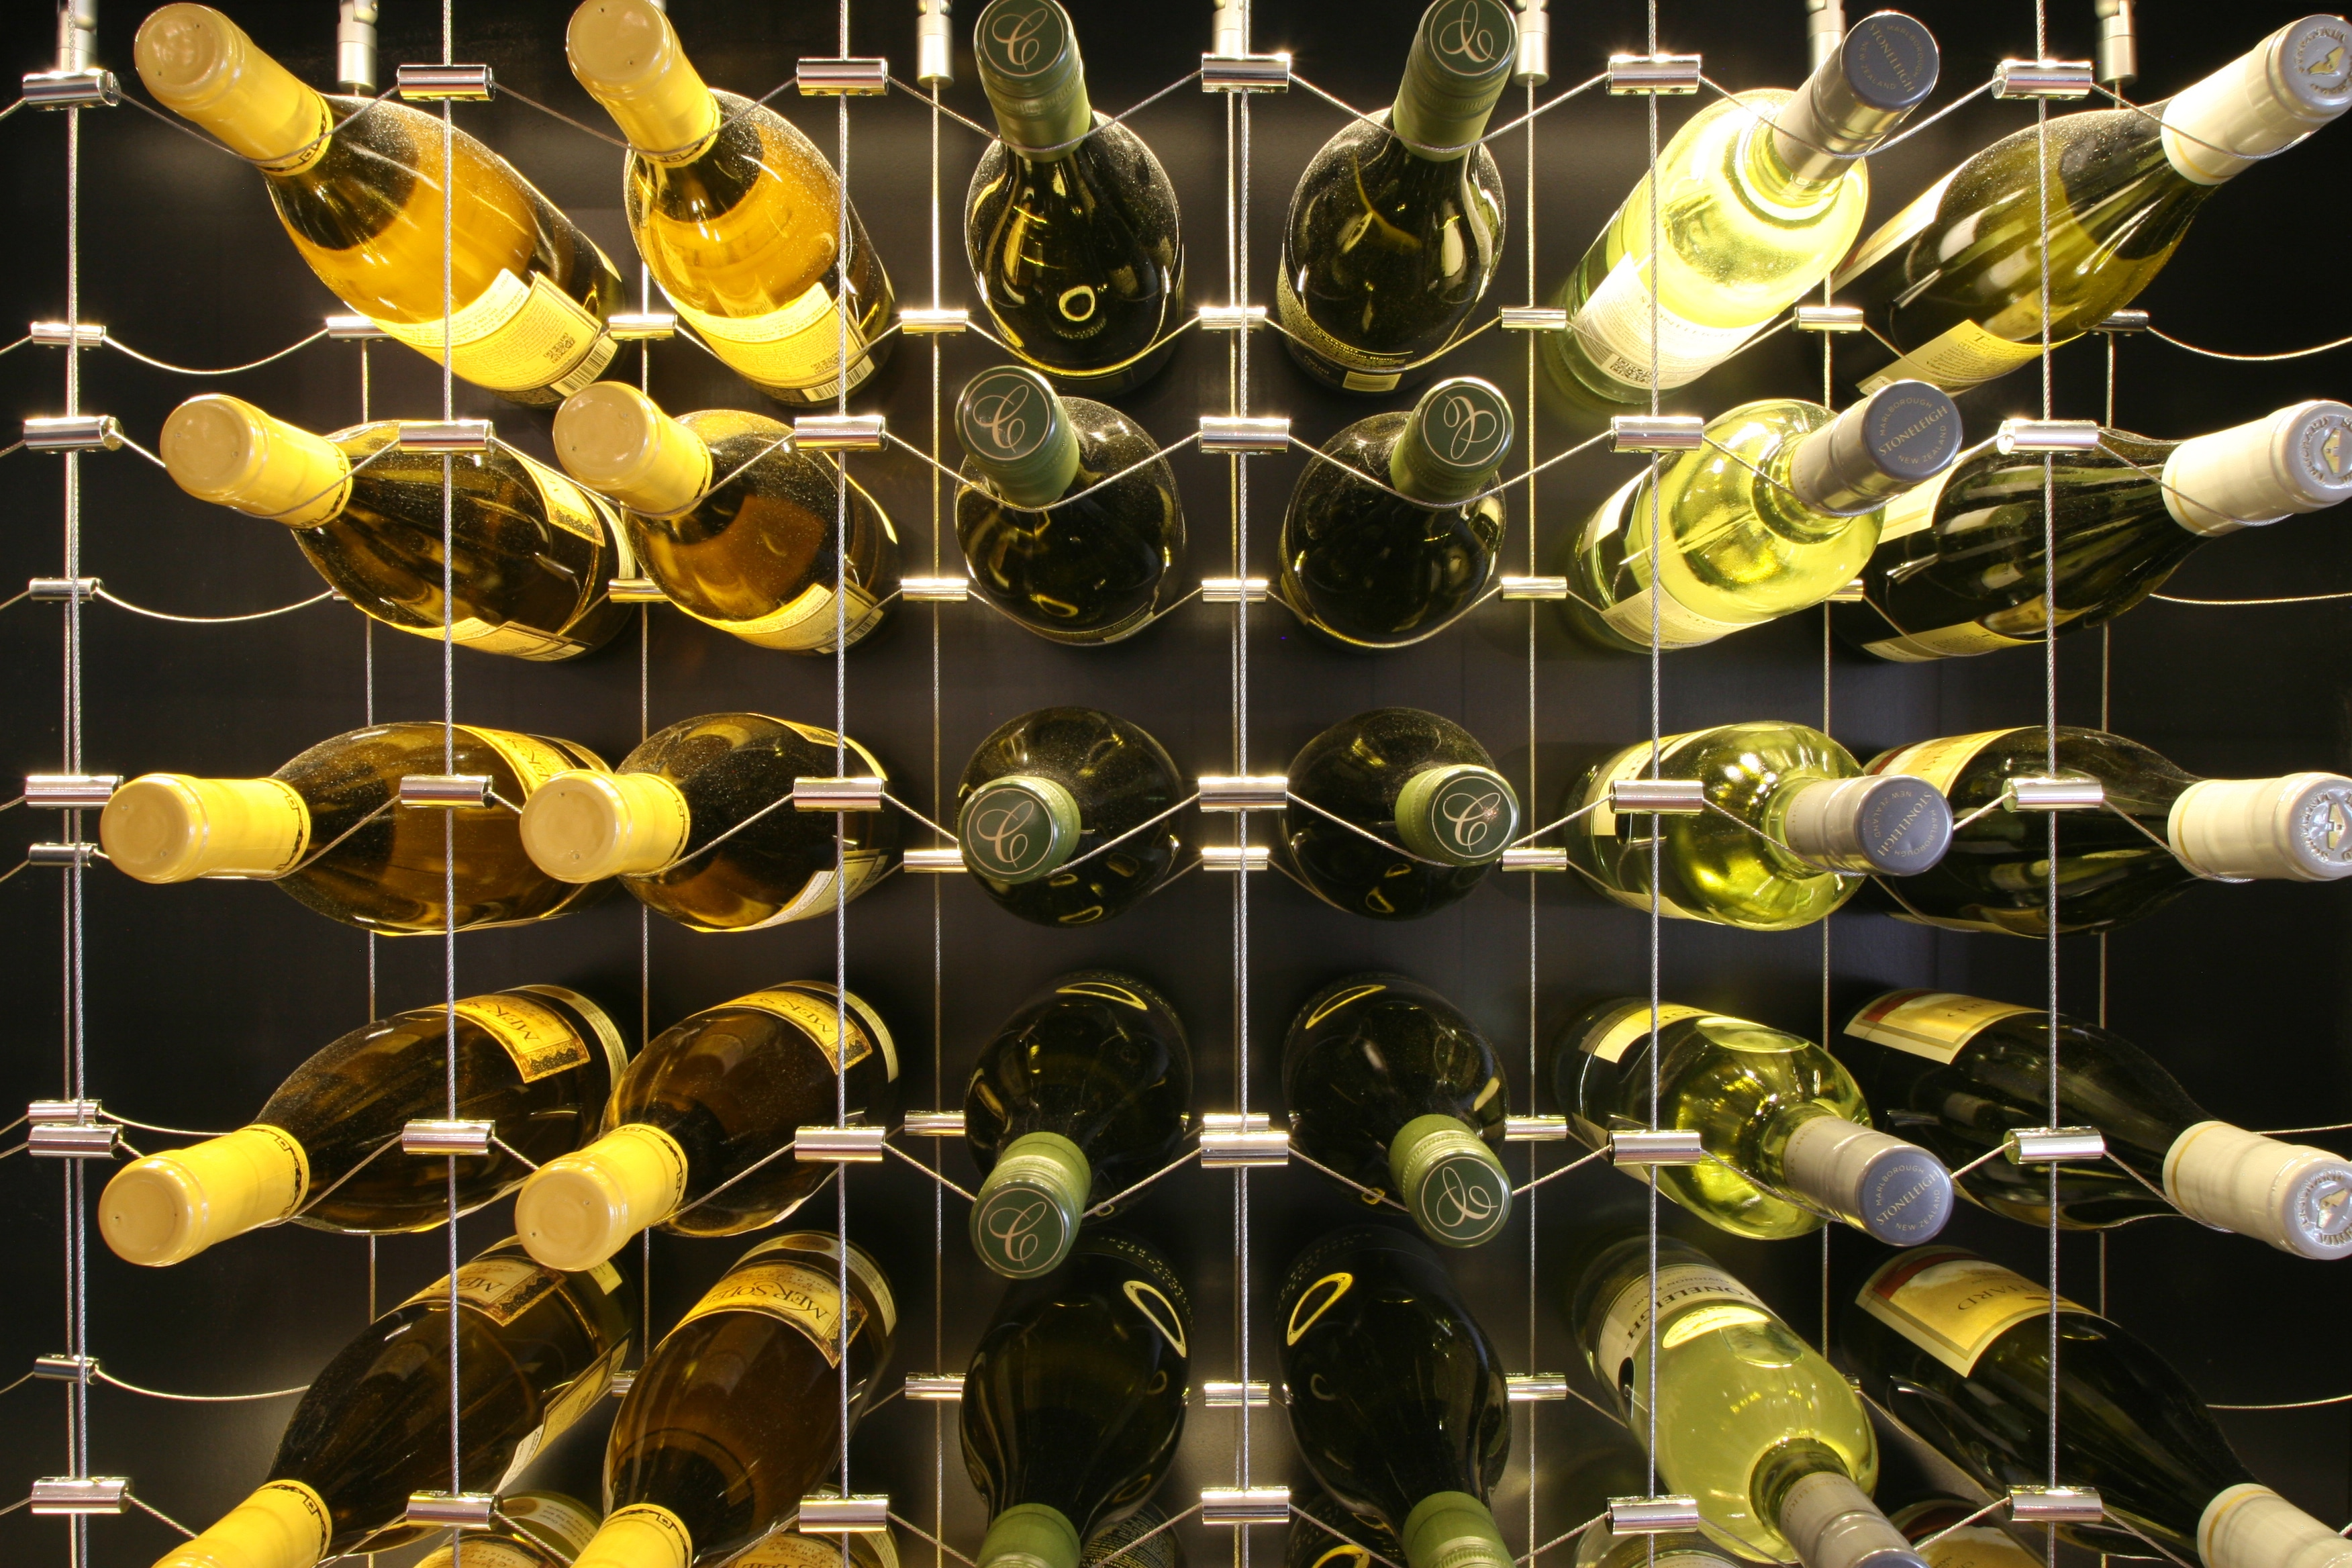 Learn more about Cable Wine Systems here!